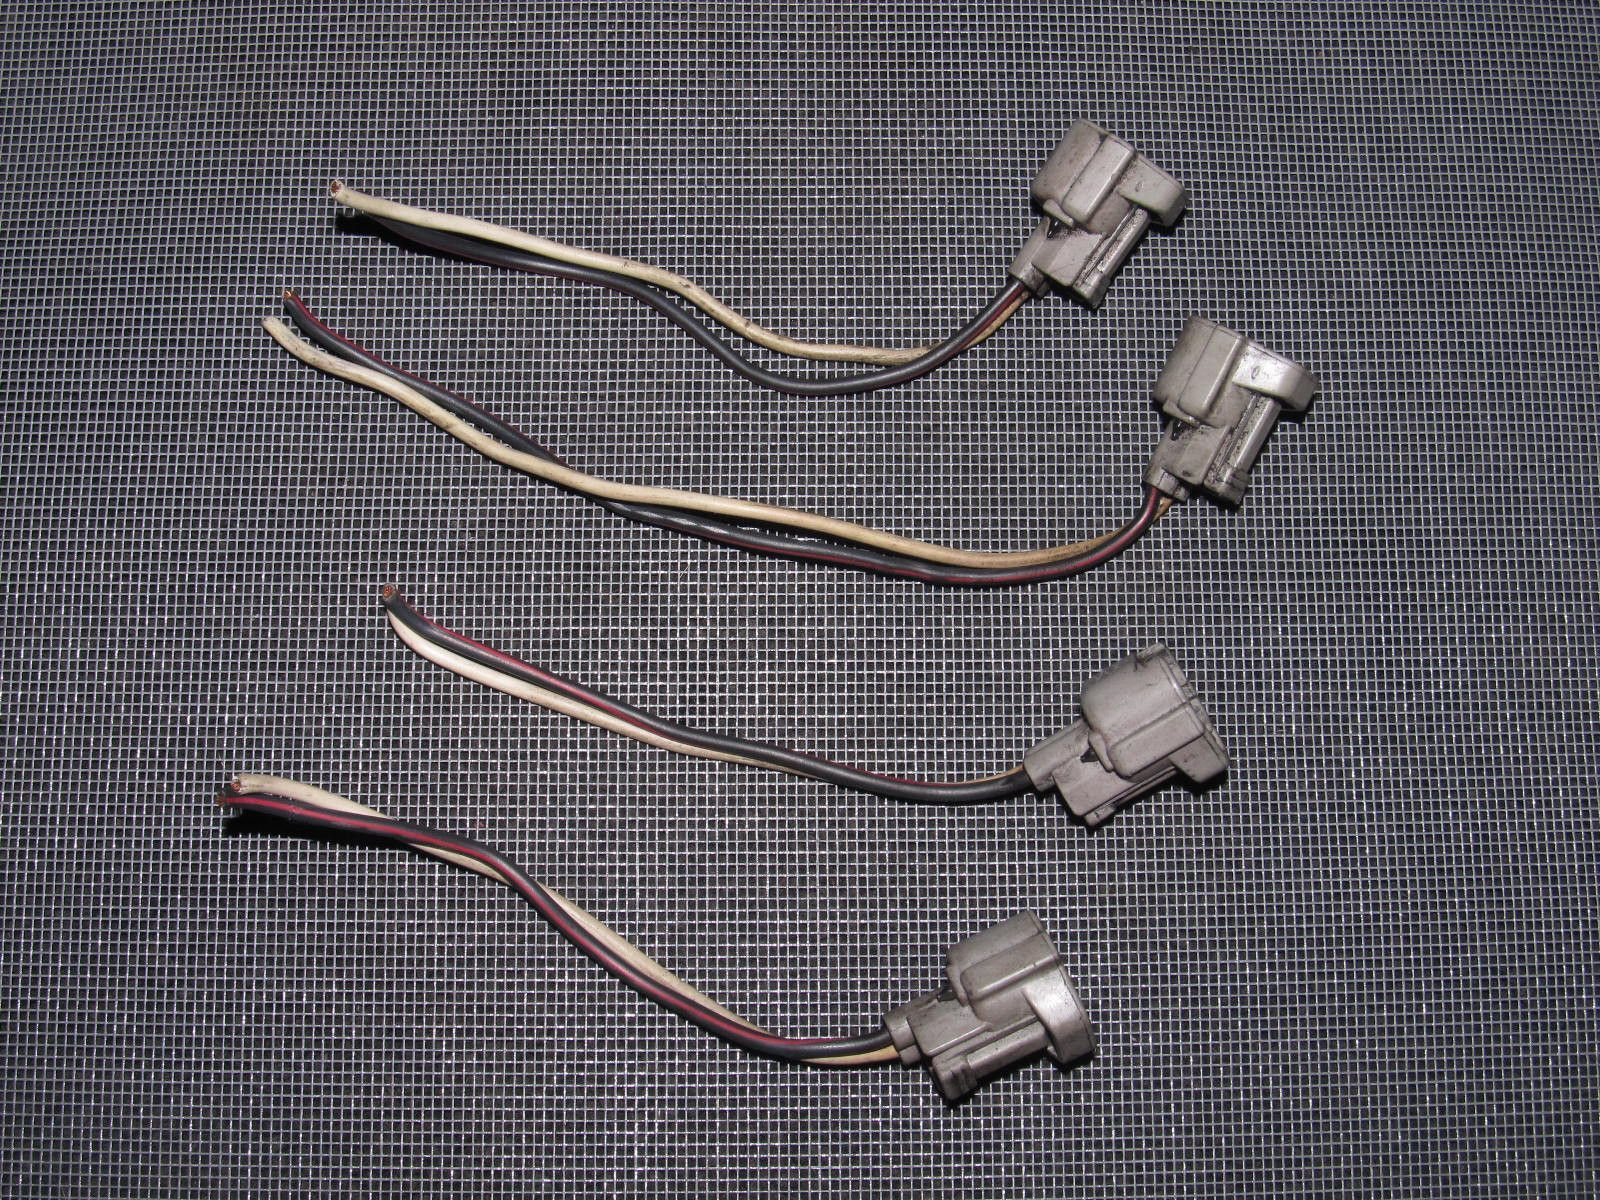 91 95 toyota mr2 oem fuel injector wiring harness 4 pieces 91 95 toyota mr2 oem fuel injector wiring harness 4 pieces